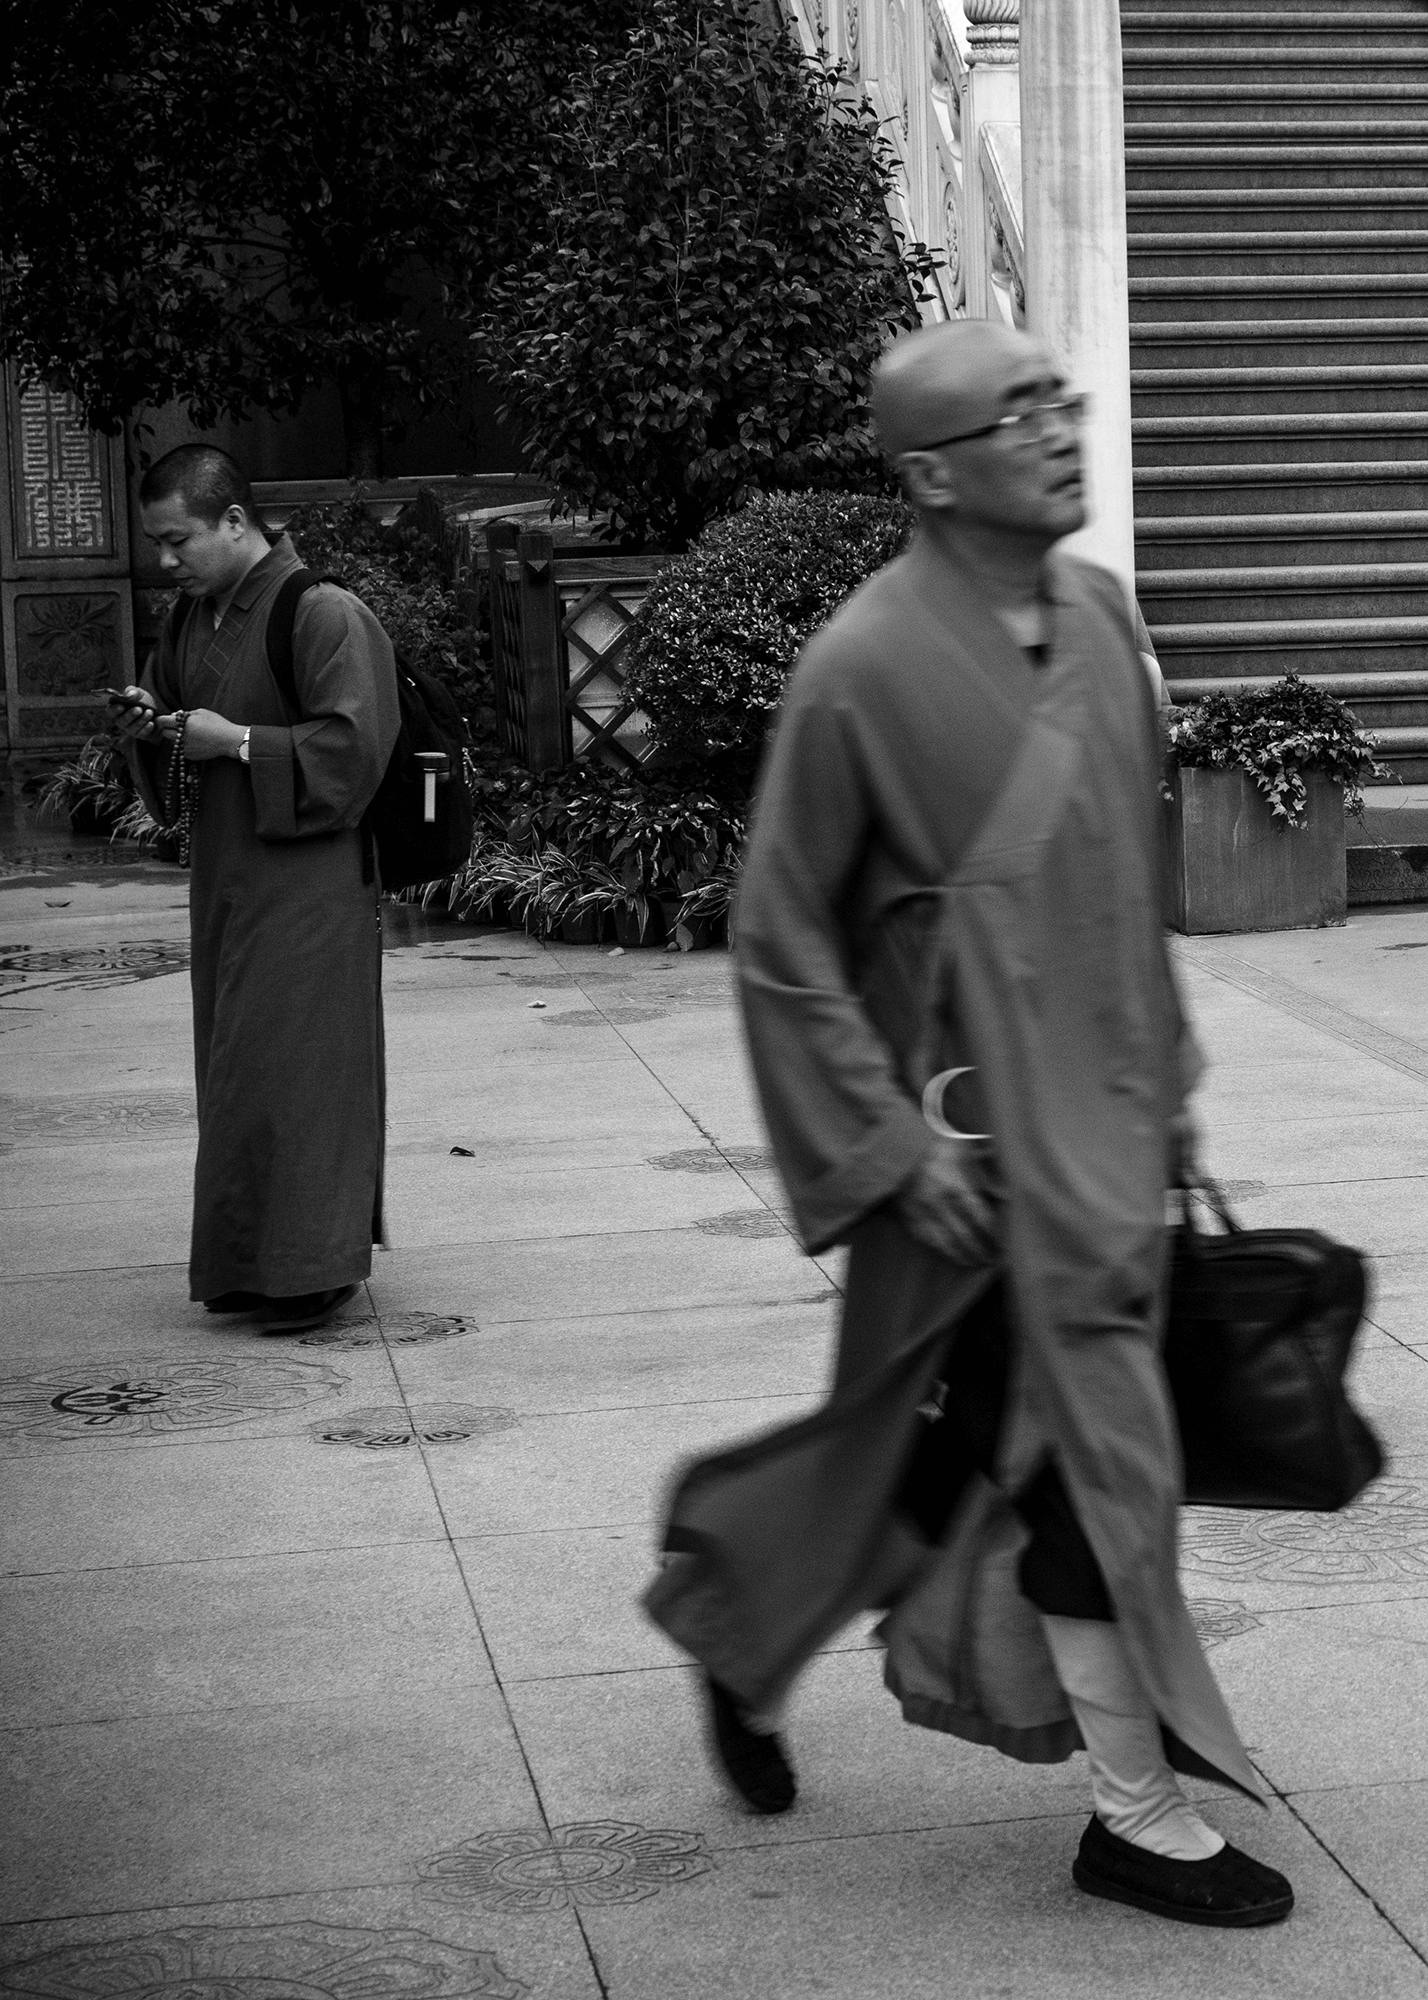 In the Midst of the Madding Crowd, Jing%u2019an Temple, Shanghai, Alvin Campos (1).png